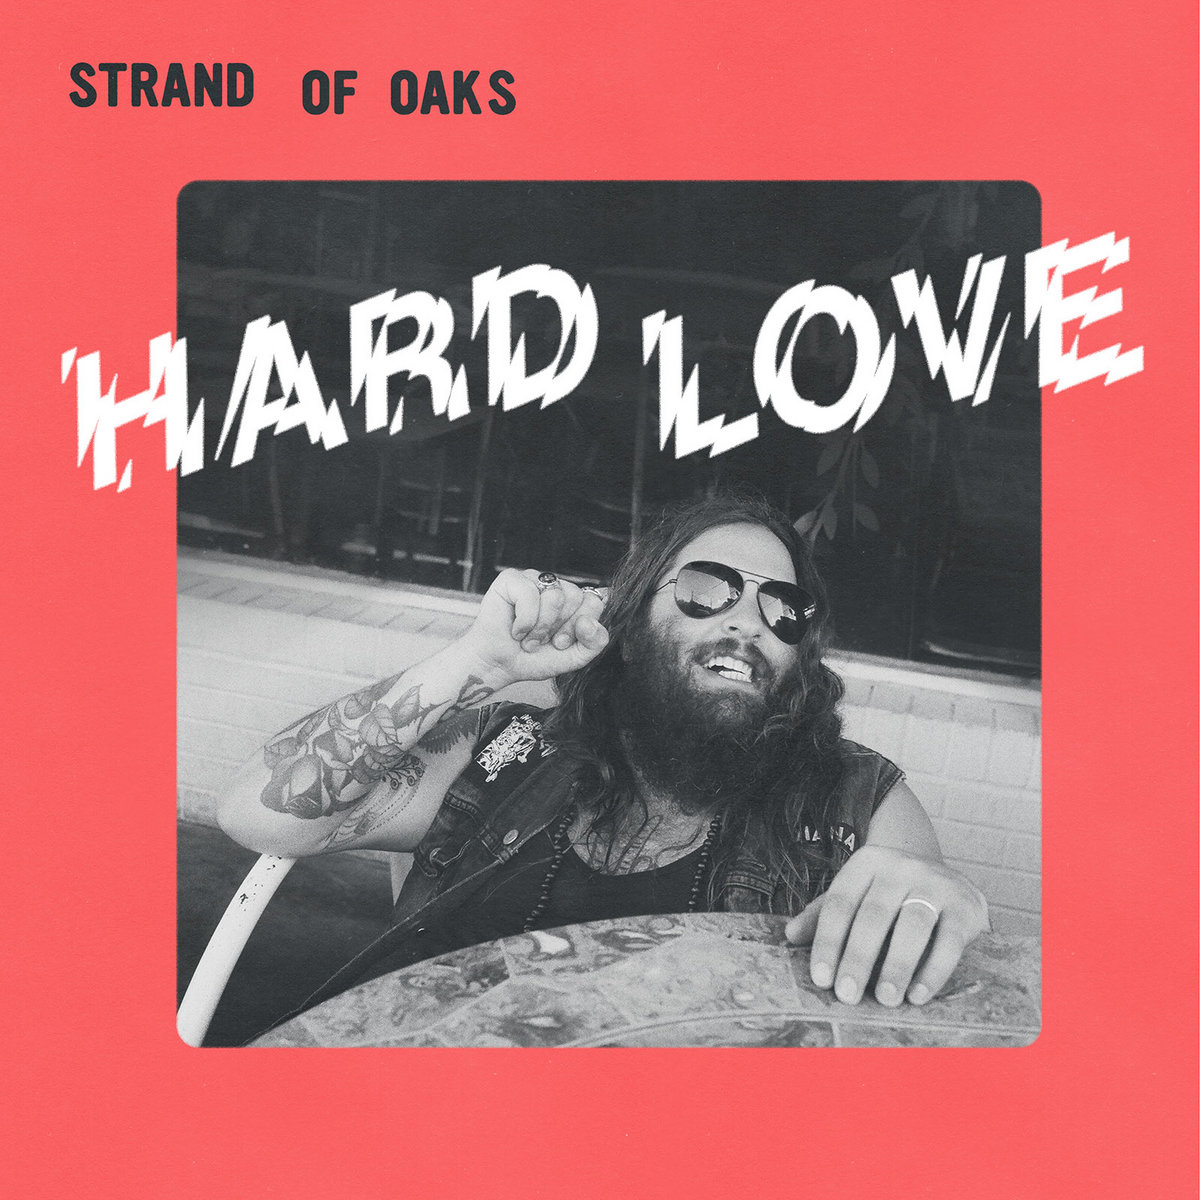 Image result for strand of oaks hard love